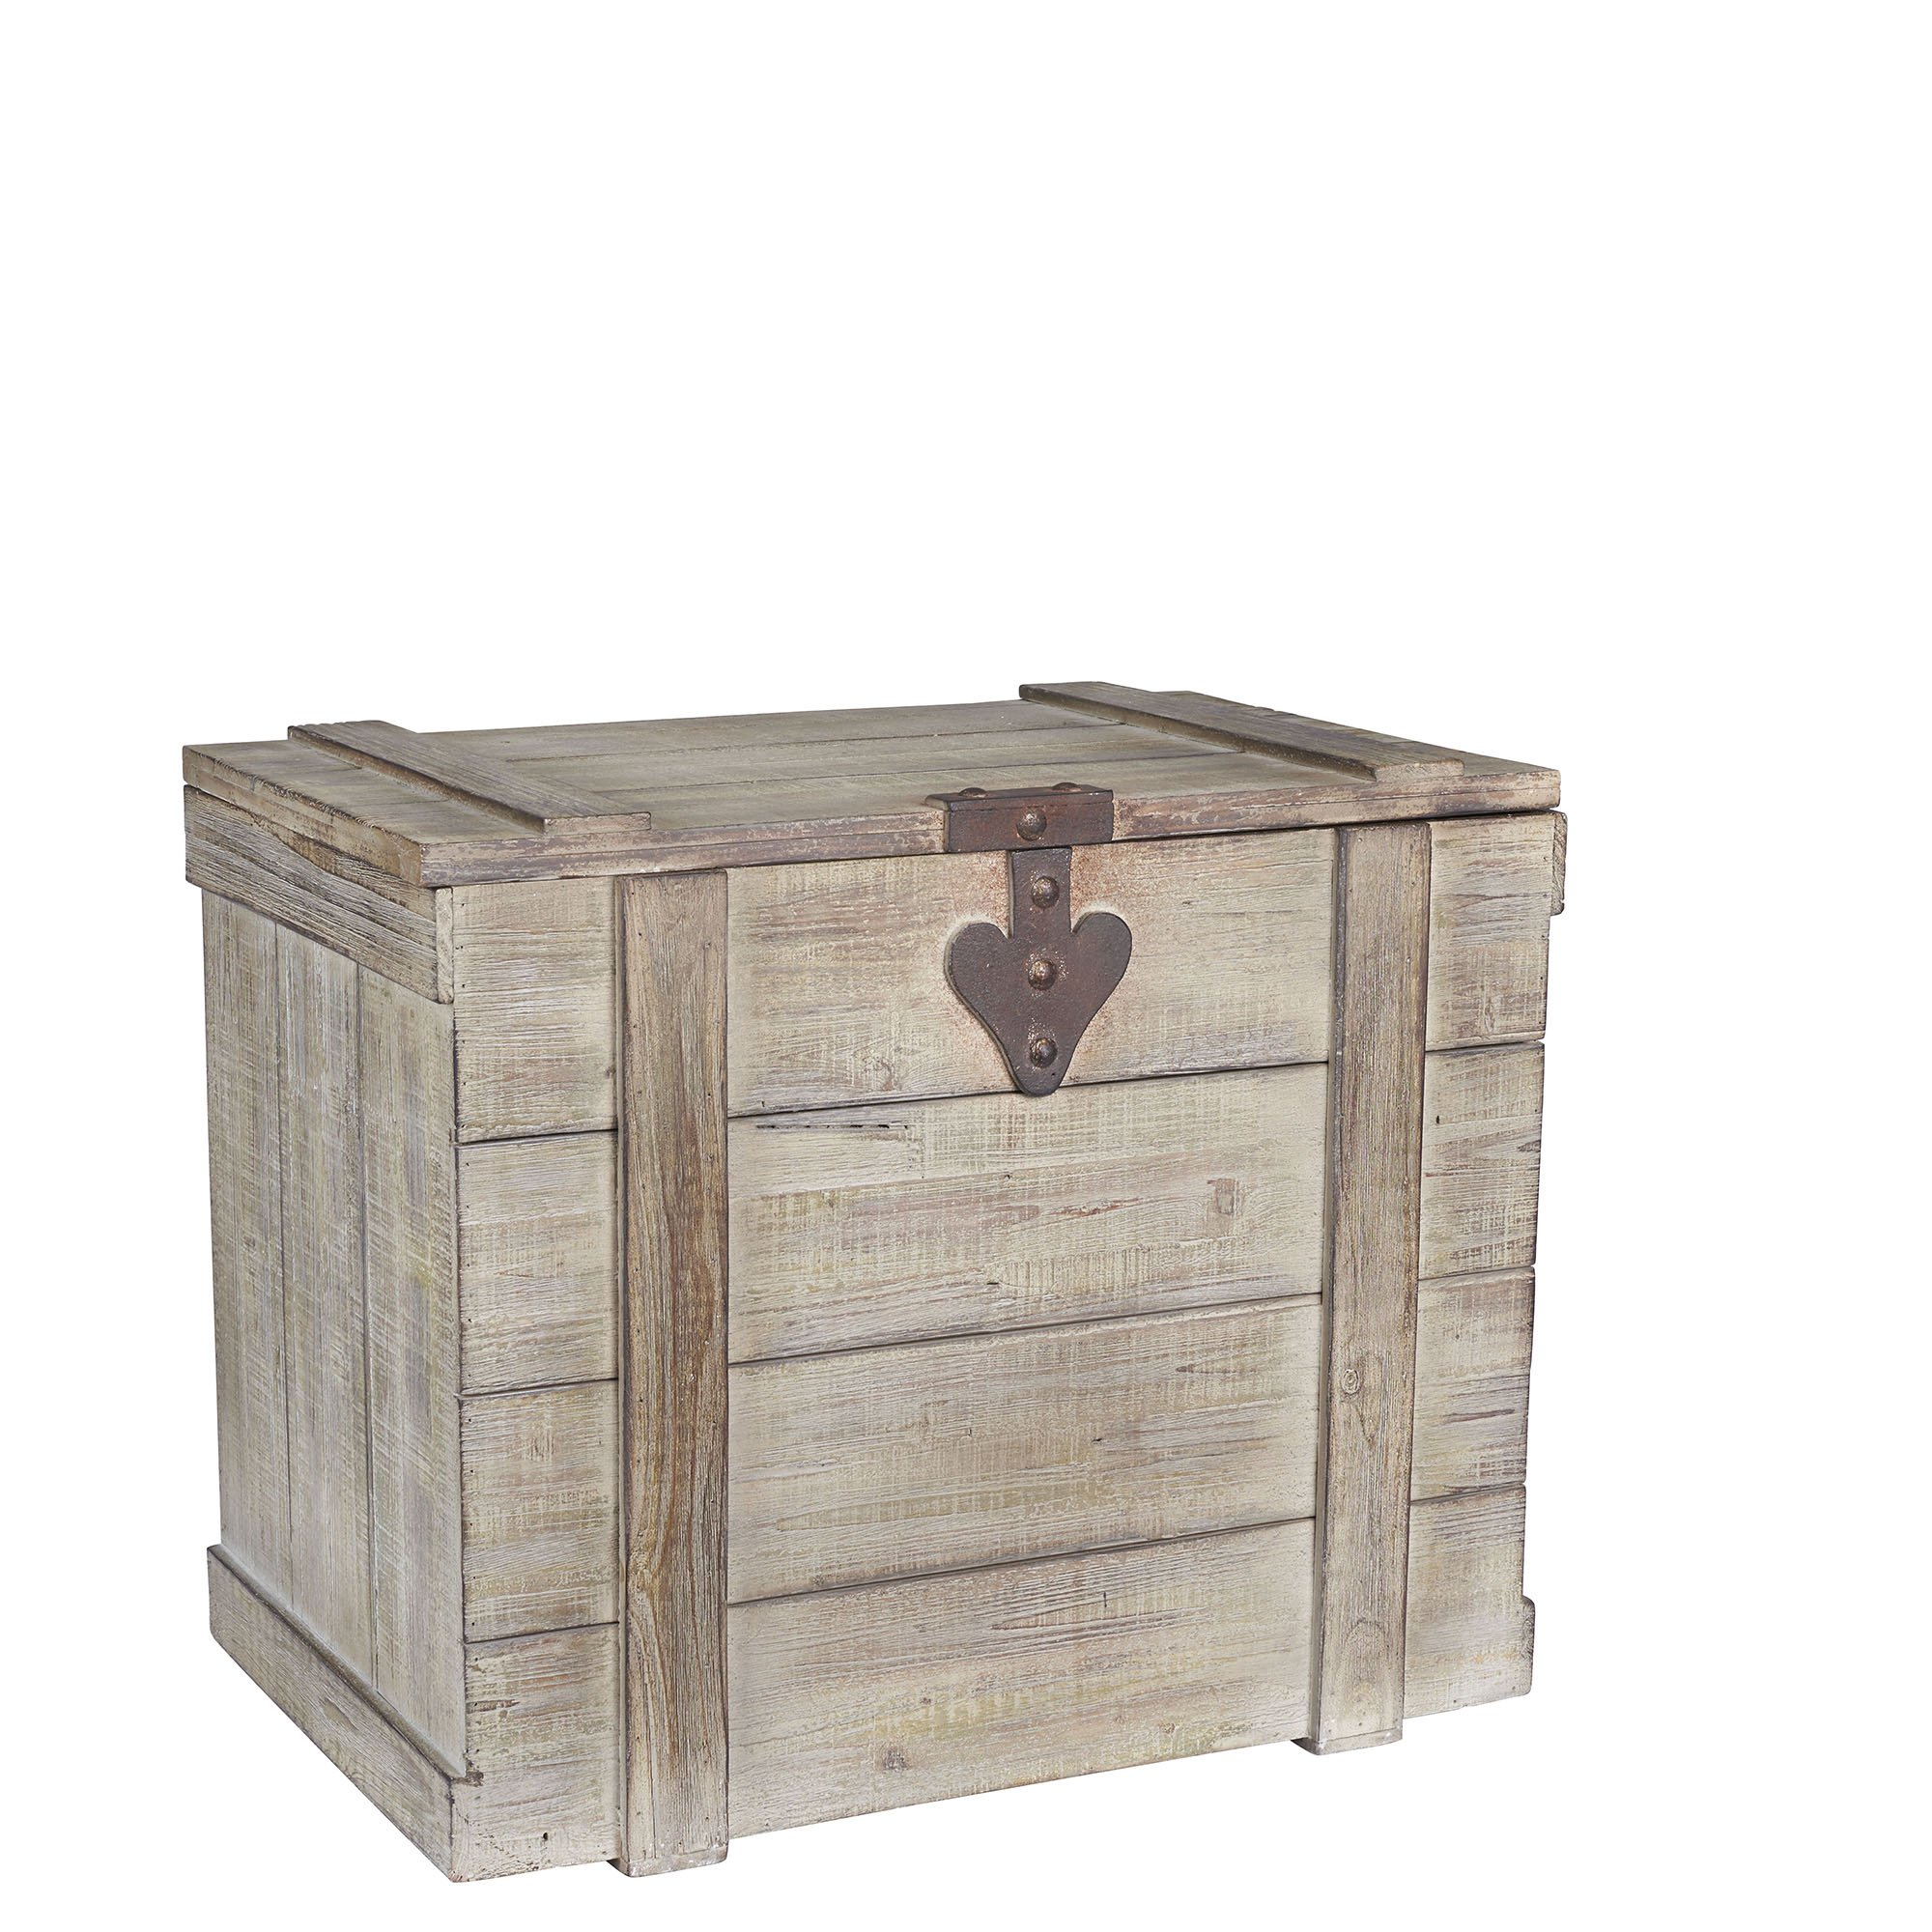 Household Essentials White Washed Rustic Decorative Wooden Trunk, Large by Household Essentials